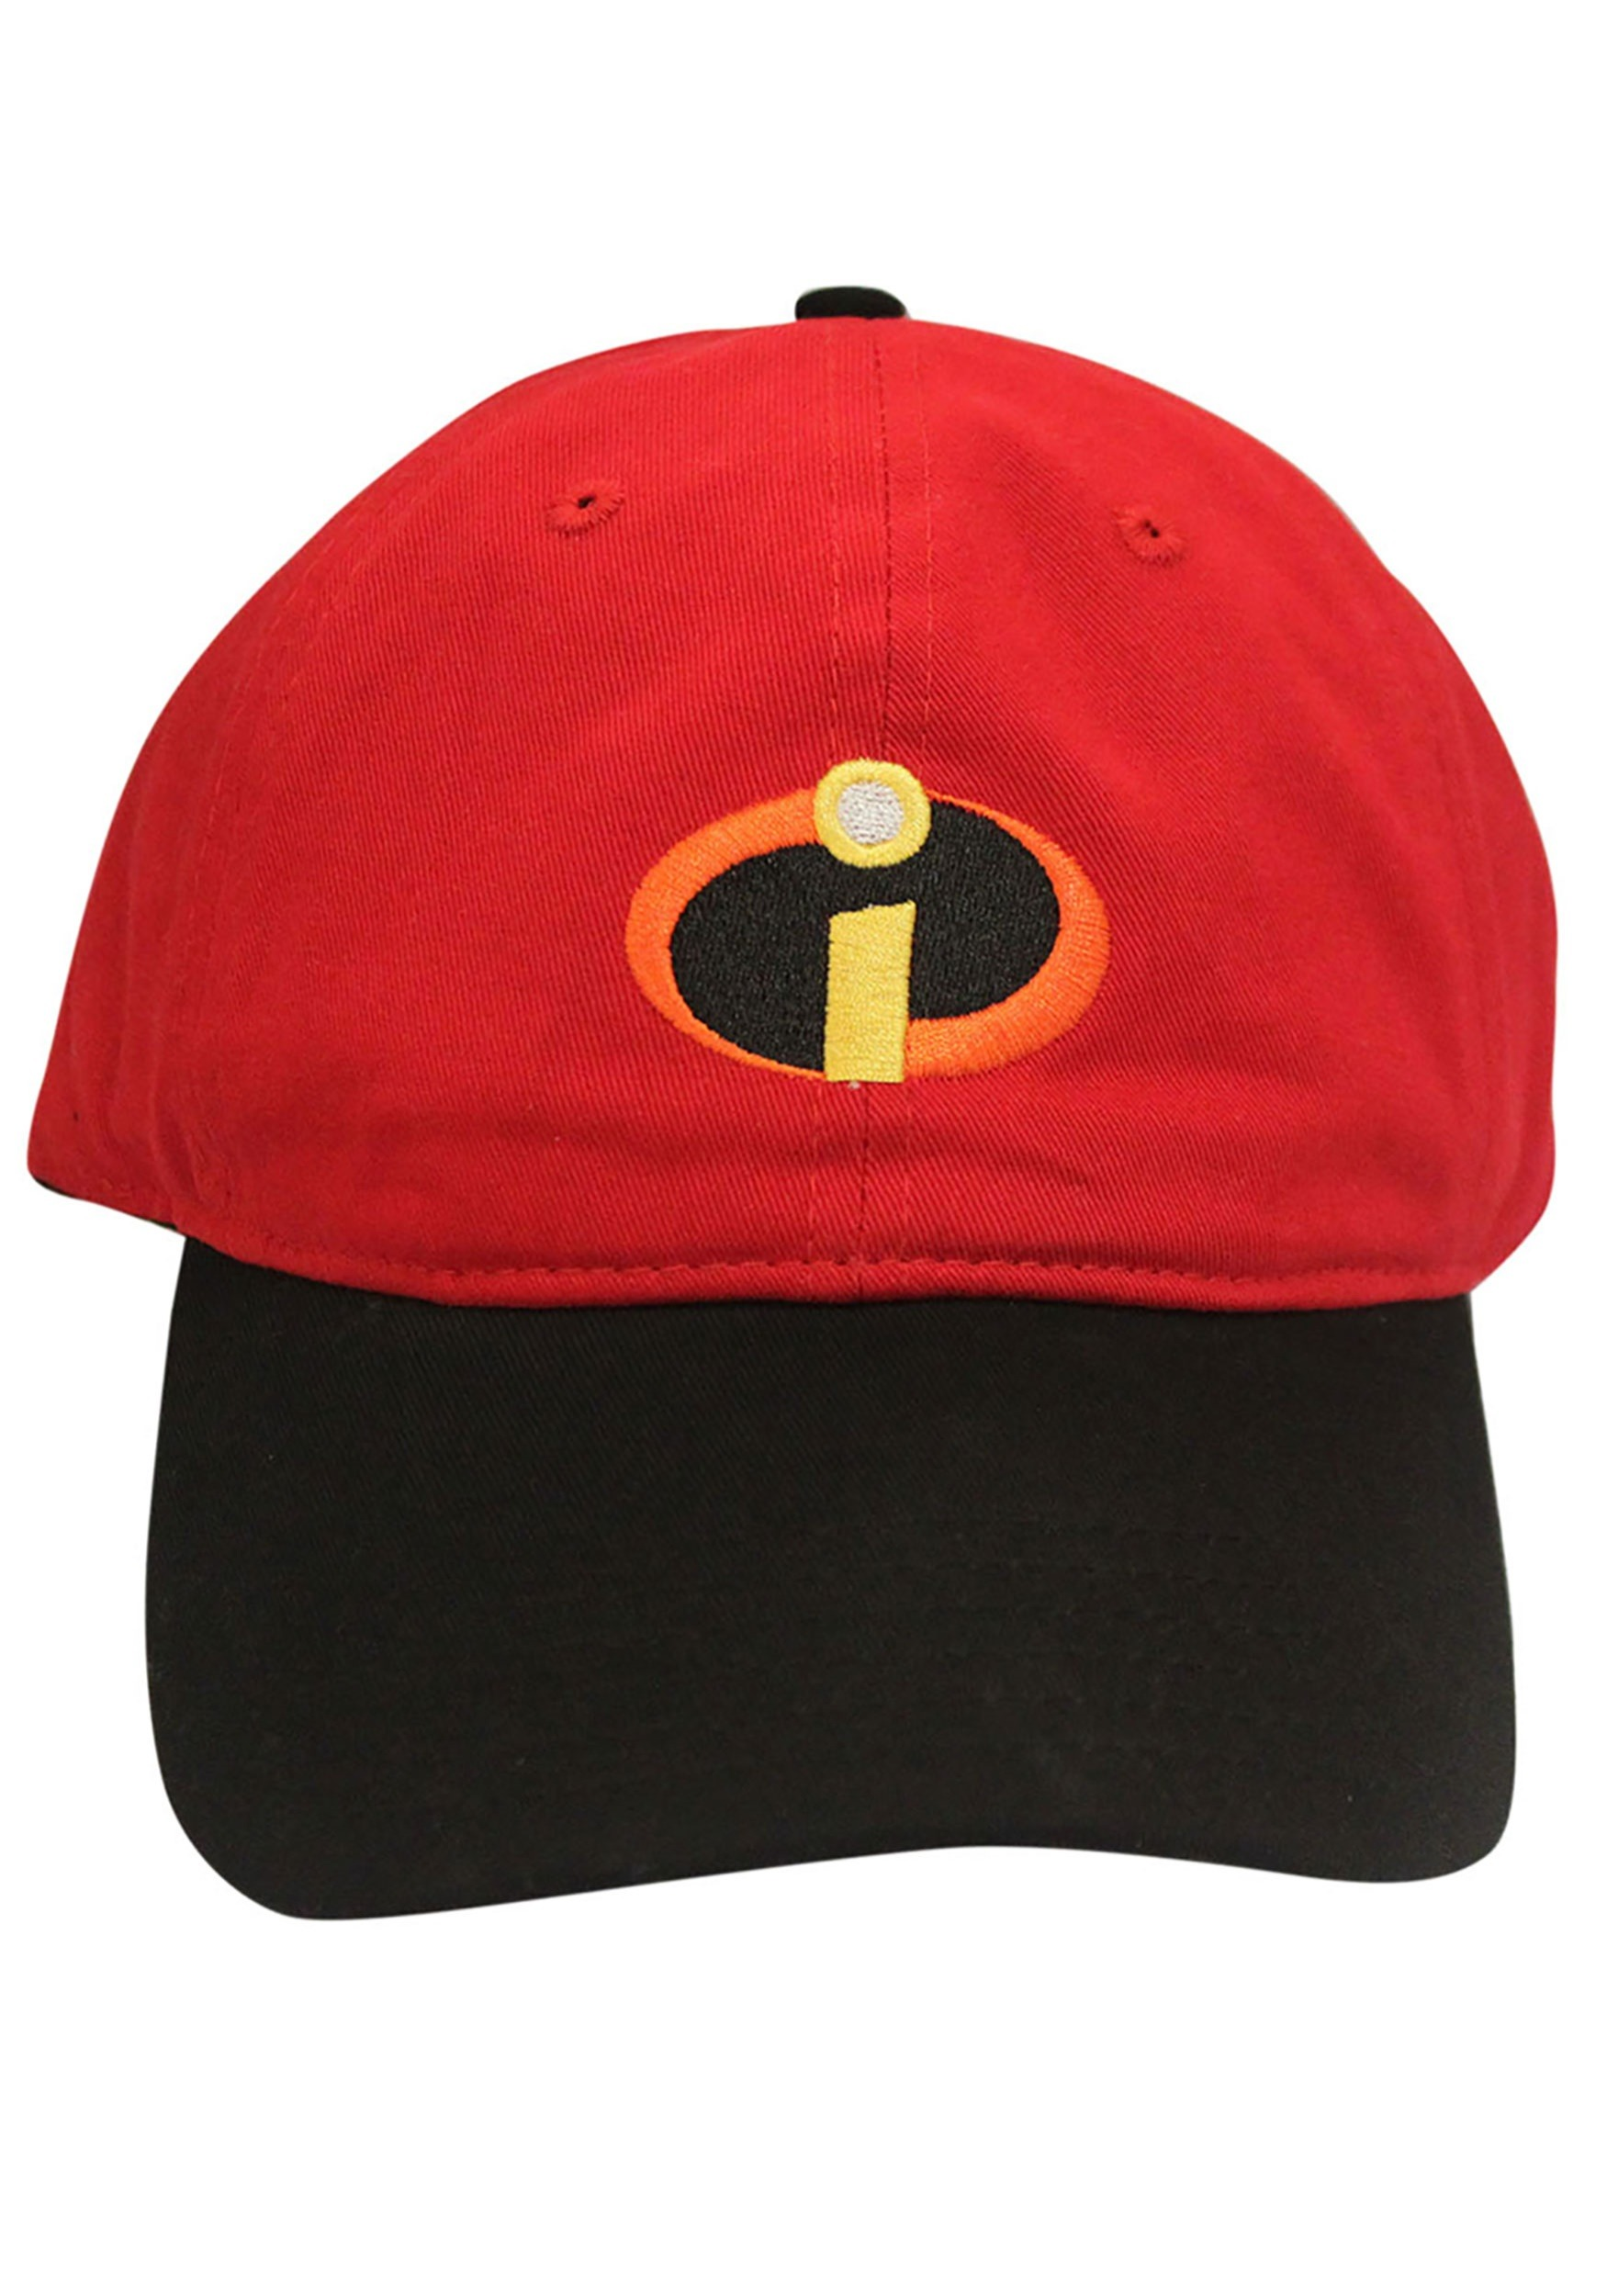 INOpets.com Anything for Pets Parents & Their Pets Disney Incredibles Logo Dad Cap